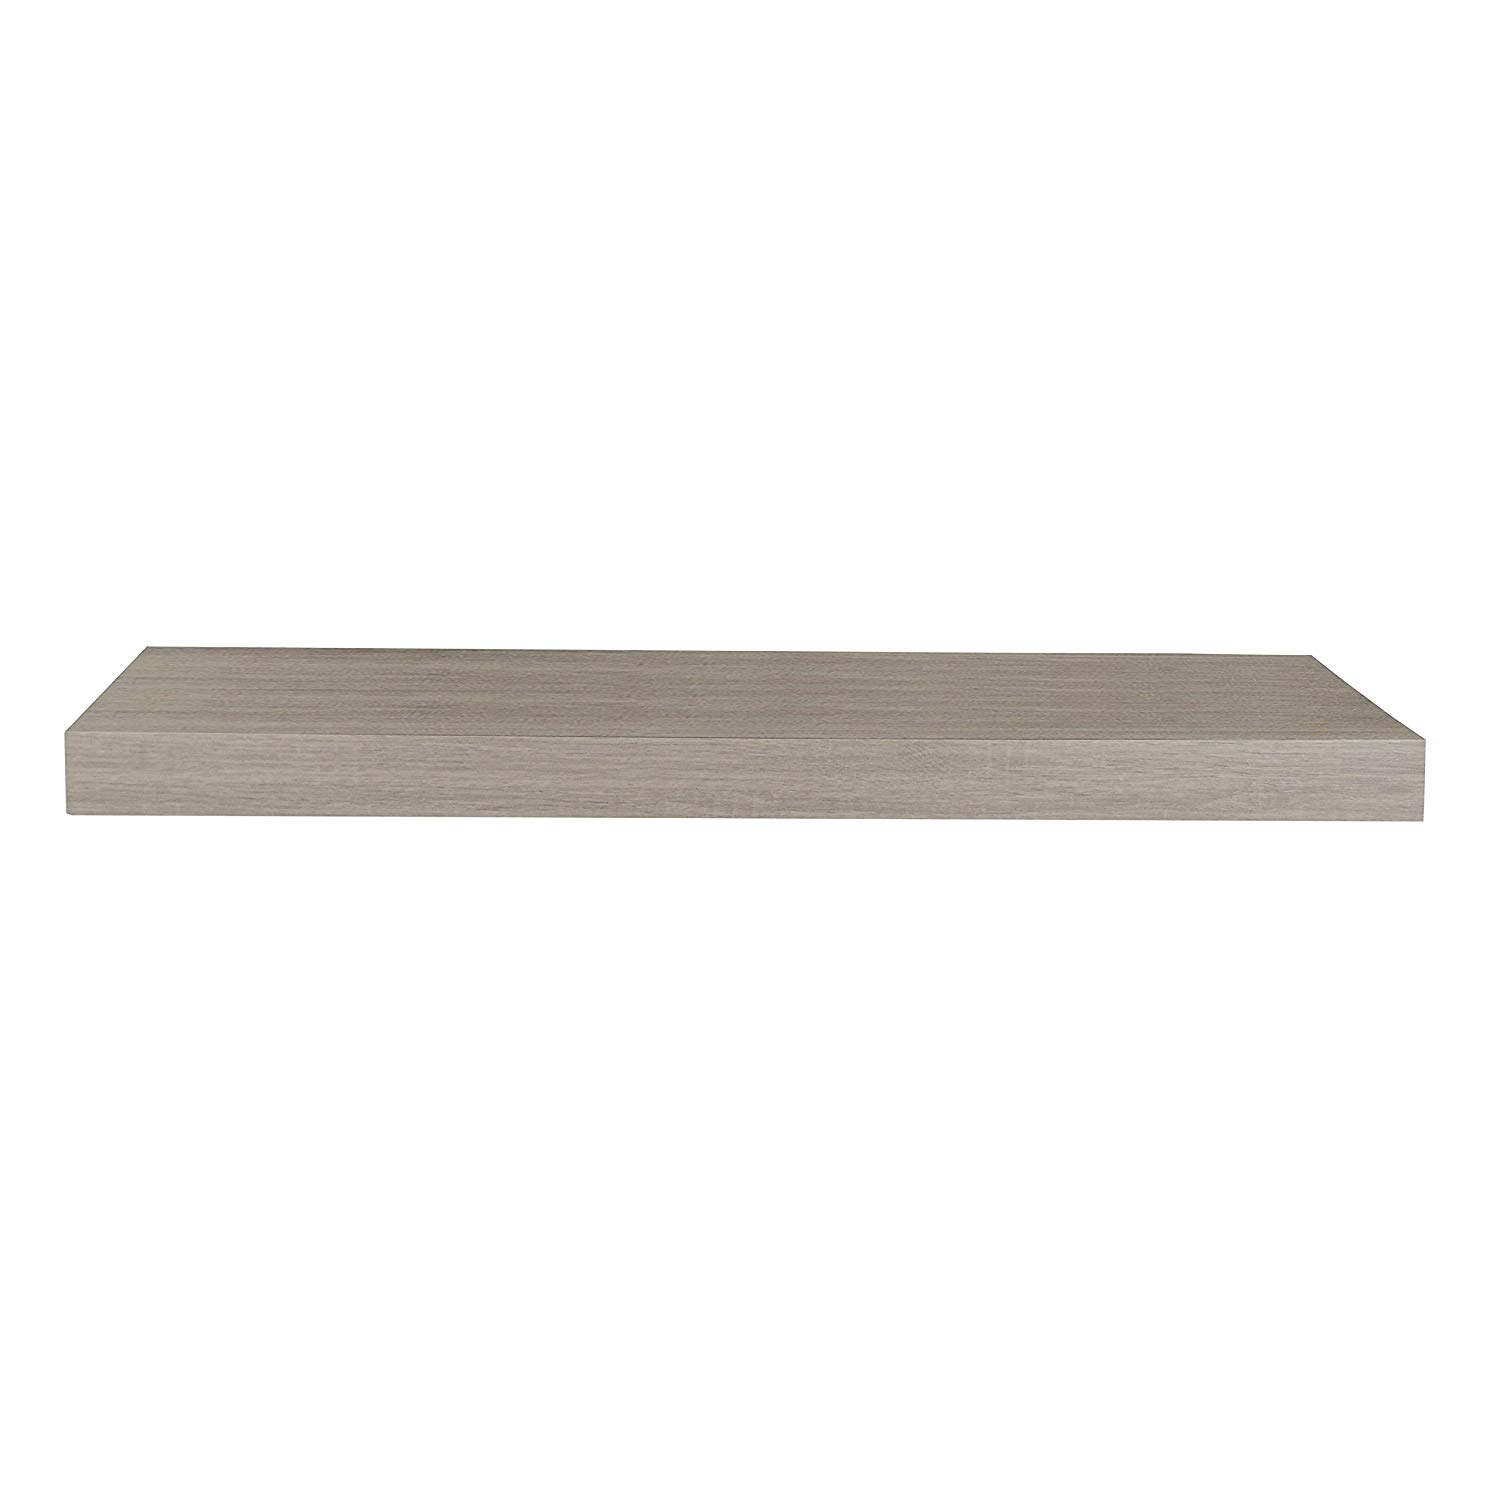 lewis hyman inplace floating shelf driftwood iodl grey wood shelves home kitchen cute ideas argos dunelm box small glass for bathroom ikea folding desk corner unit with doors